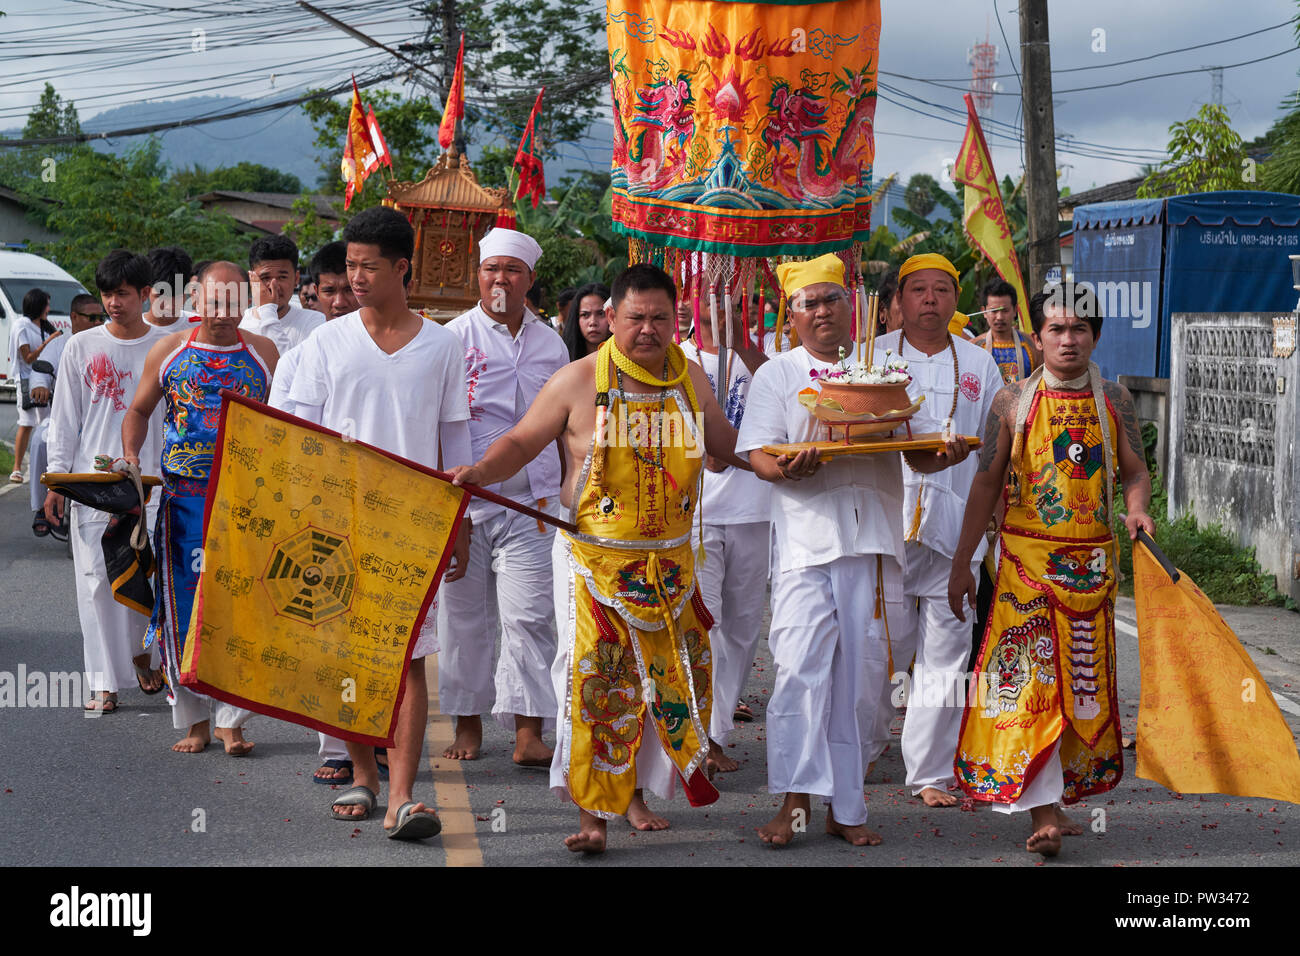 A street procession during the annual Vegetarian Festival in Phuket, Thailand, during which some participants pierce their bodies with strange objects Stock Photo